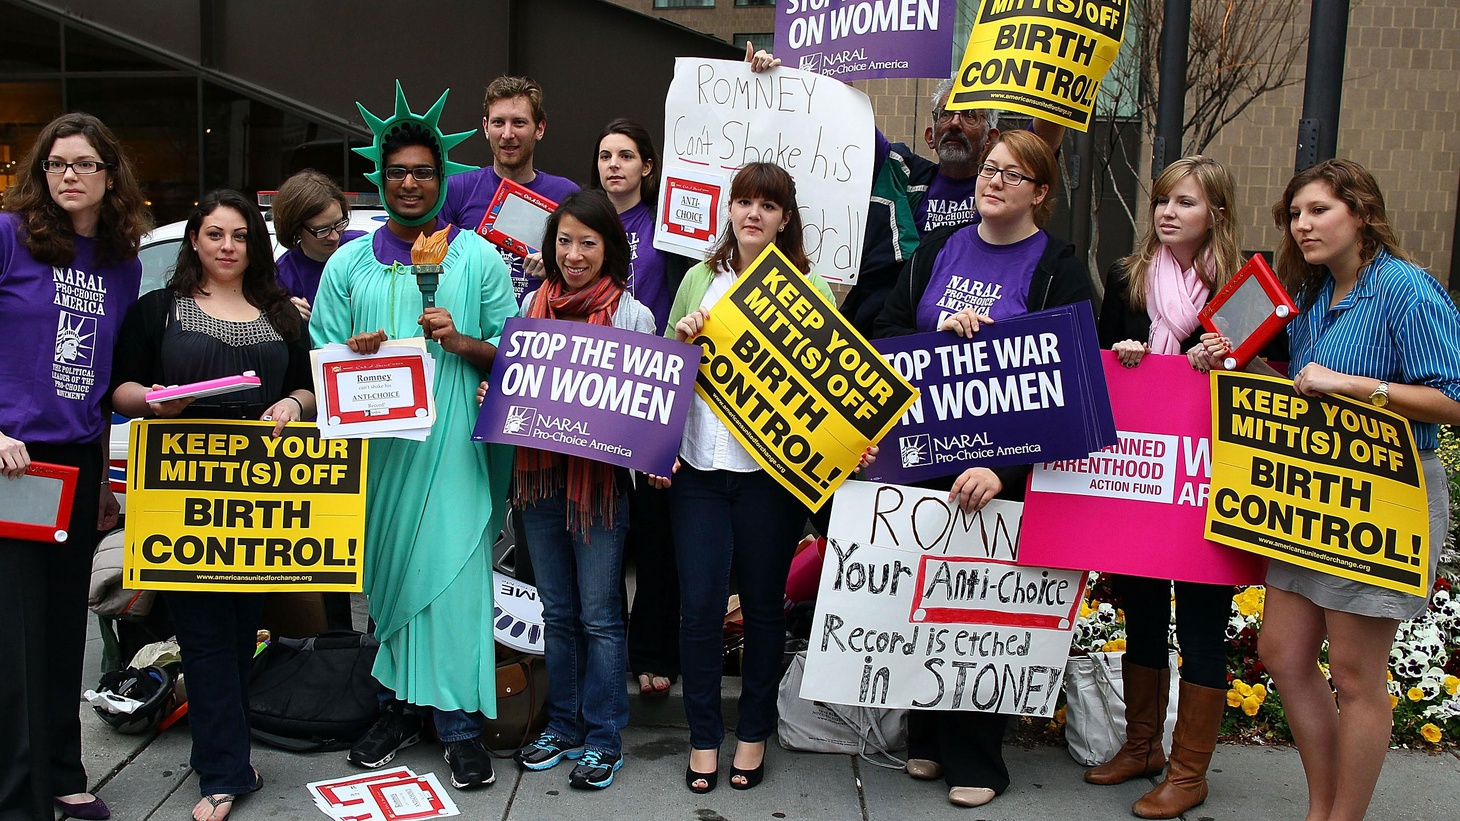 Women's issues have dominated the political headlines lately. Who benefits from the debate? How important are women voters in this year's election? Sara Terry guest hosts.